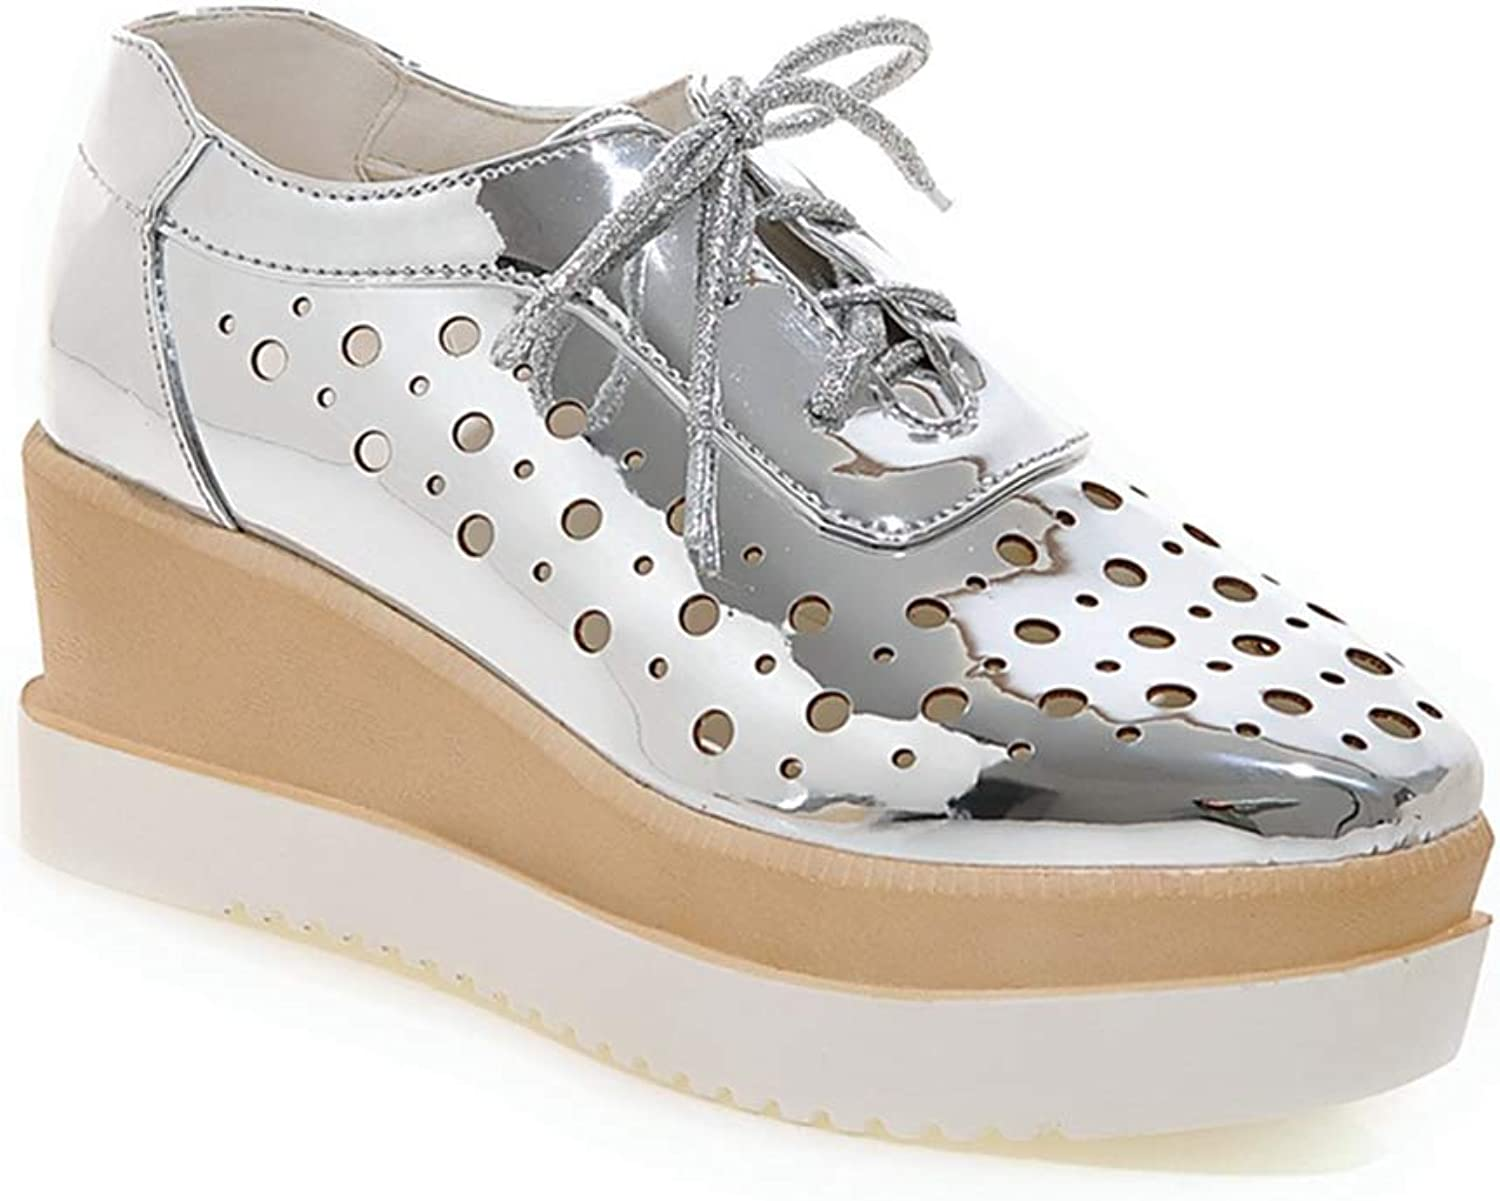 GIY Women's Square Toe Glitter Platform Wedge Oxford shoes Wingtip Lace Up Chunky High Heel Dress shoes